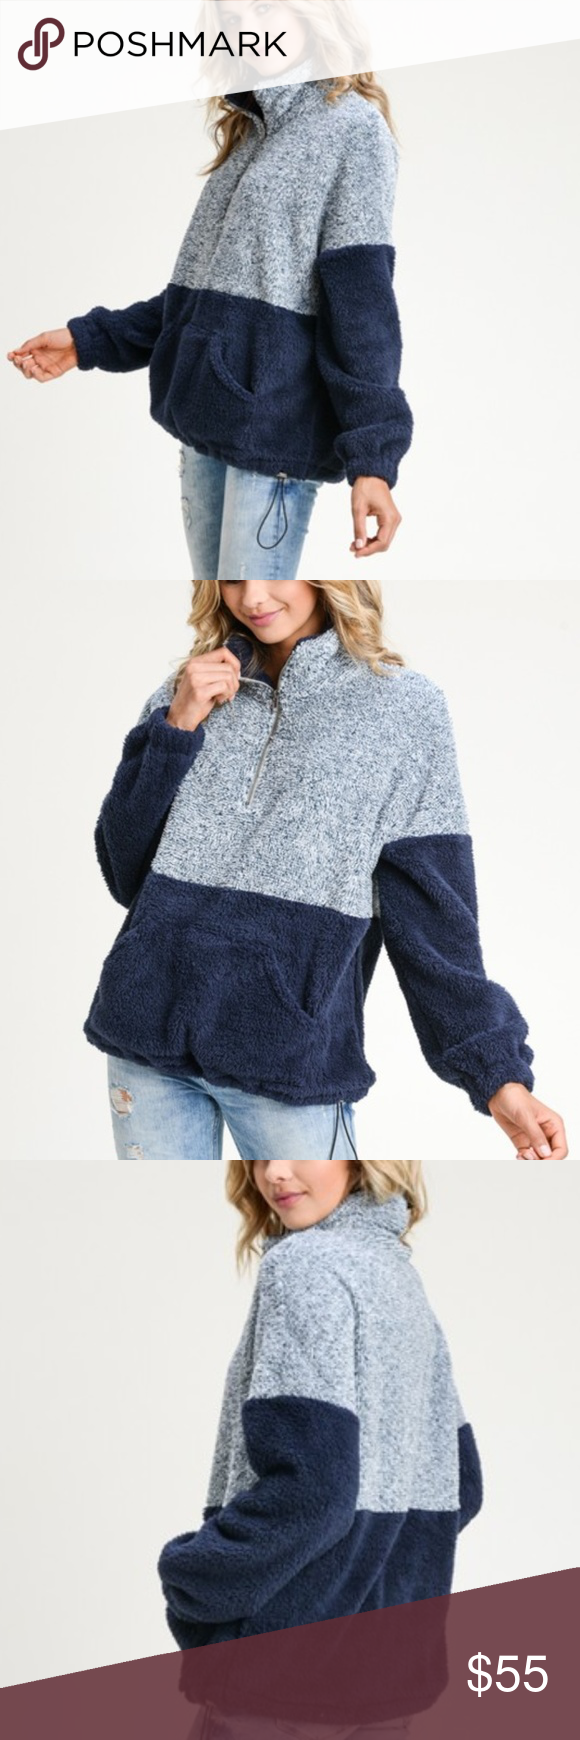 Two Tone 1/4 Zip Pull Over Sweater Jacket Boutique